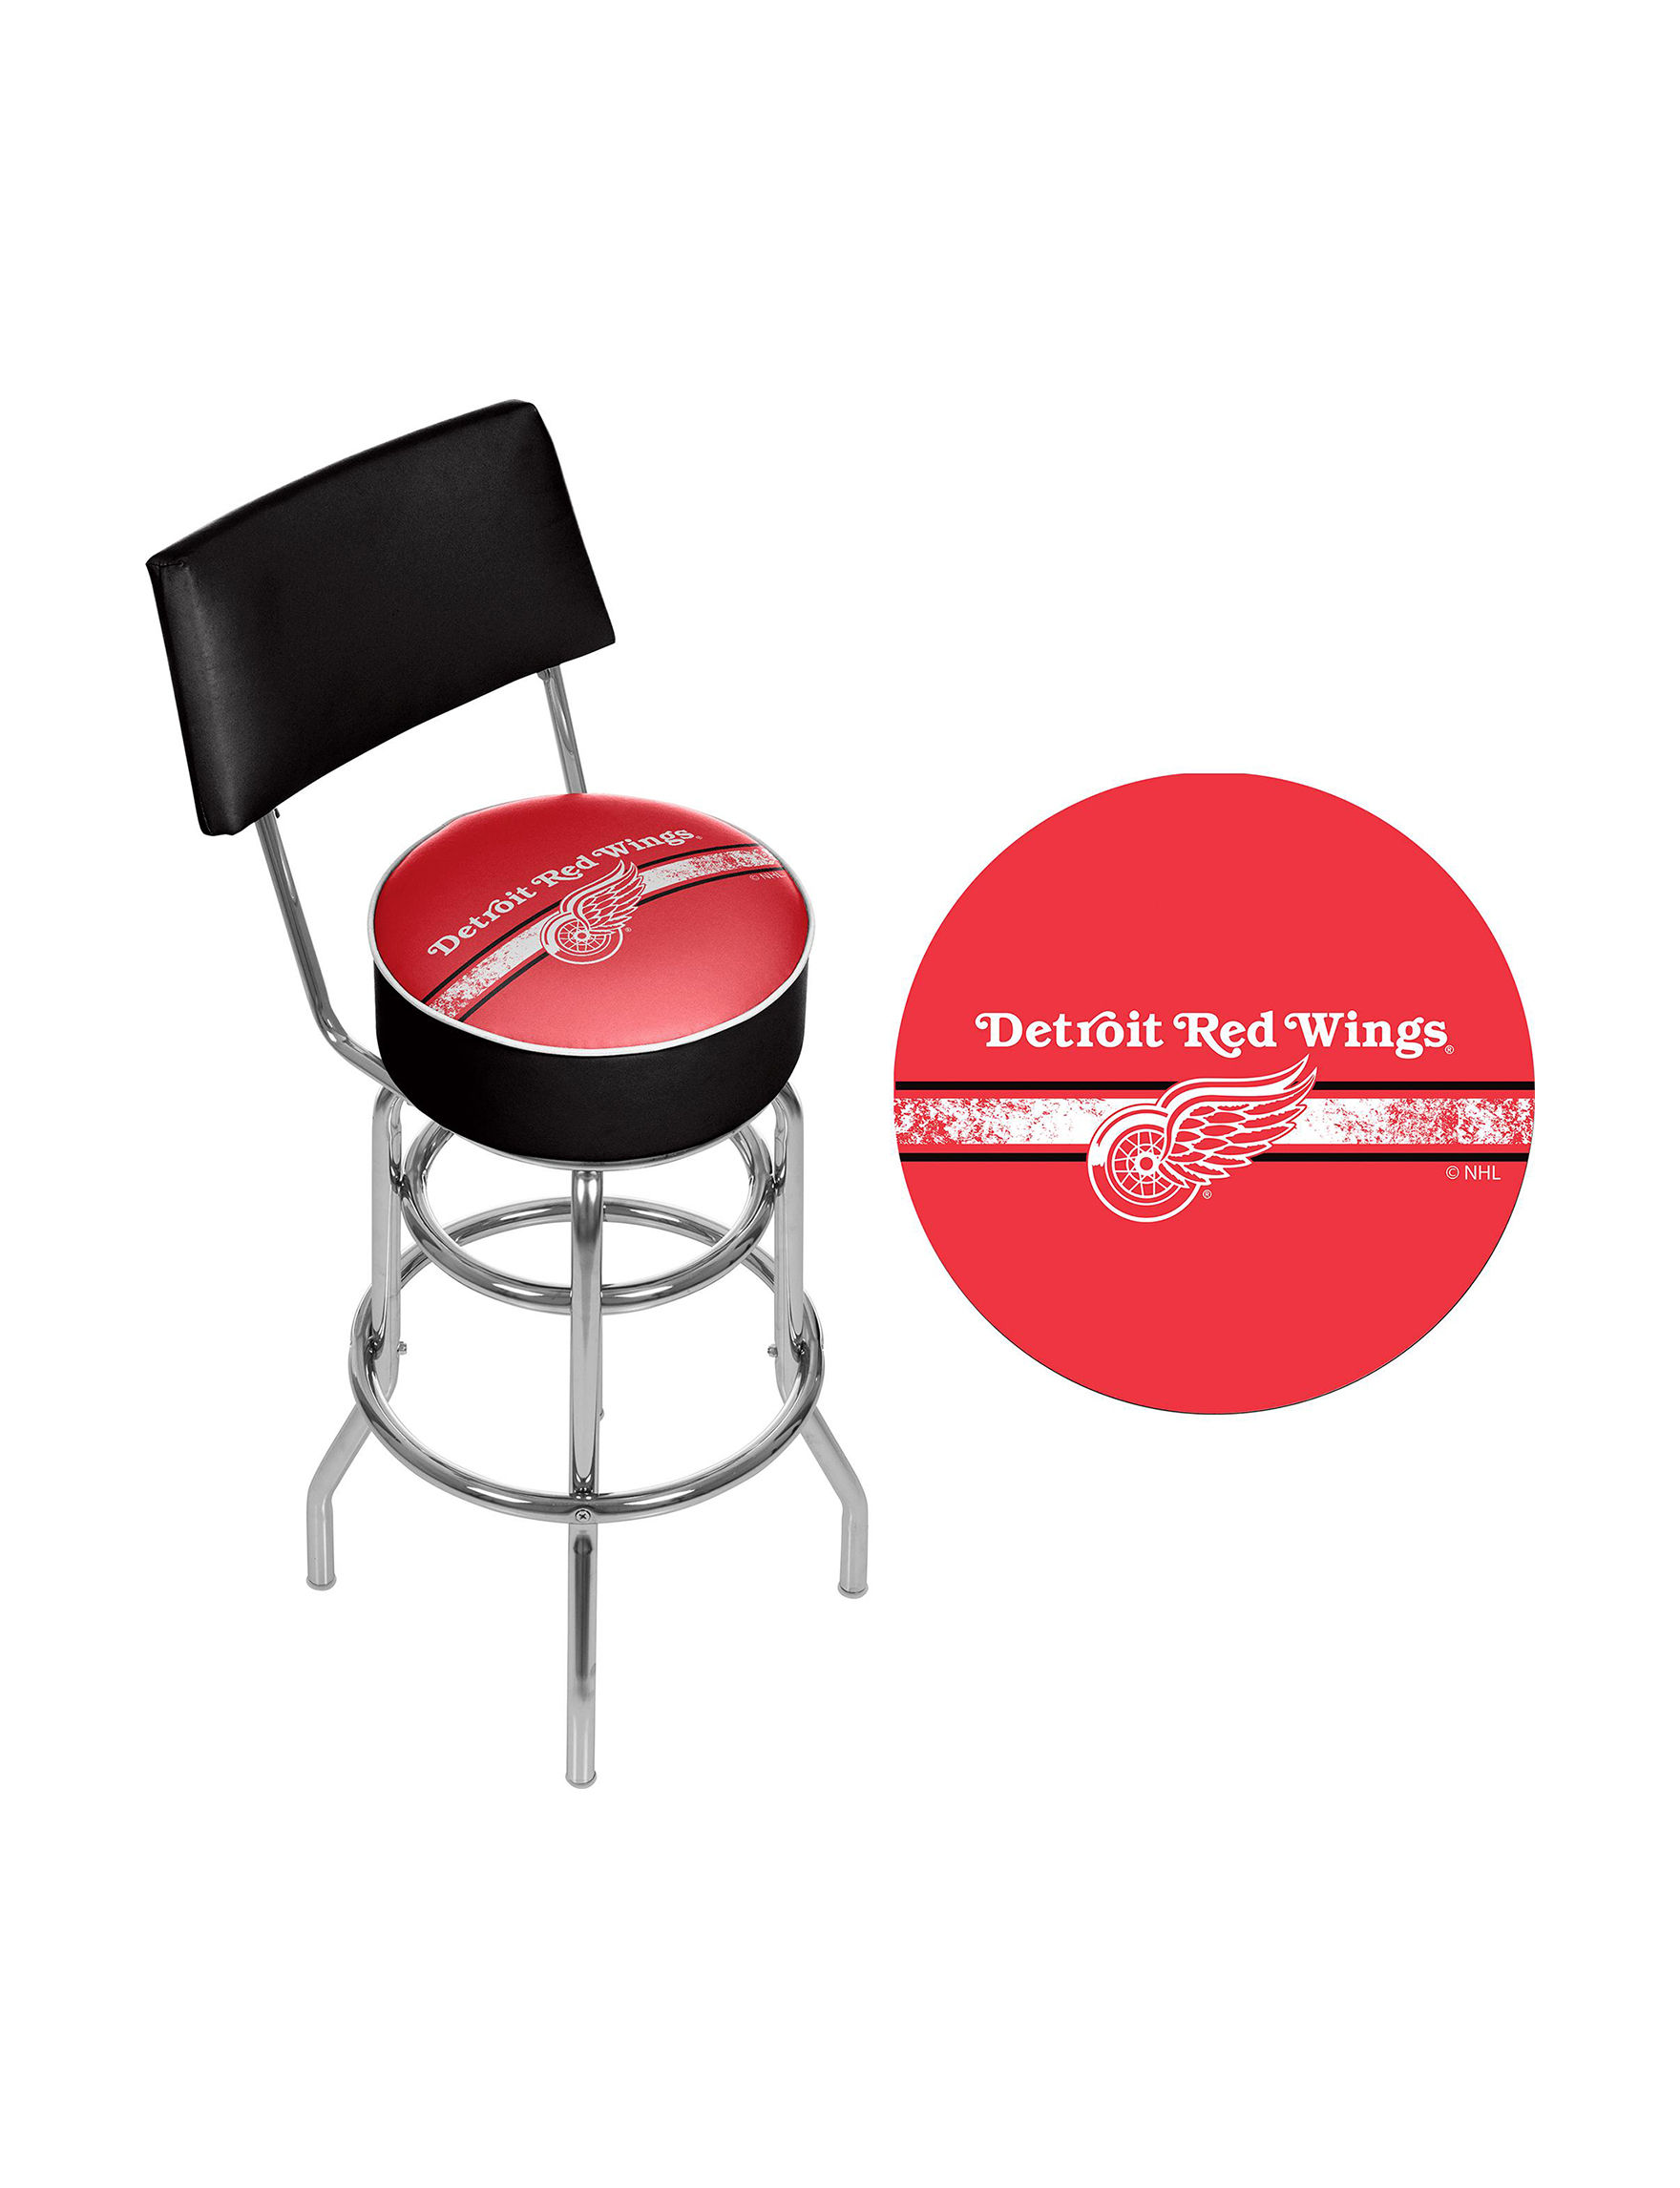 Nhl Detroit Red Wings Swivel Bar Stool With Back Stage